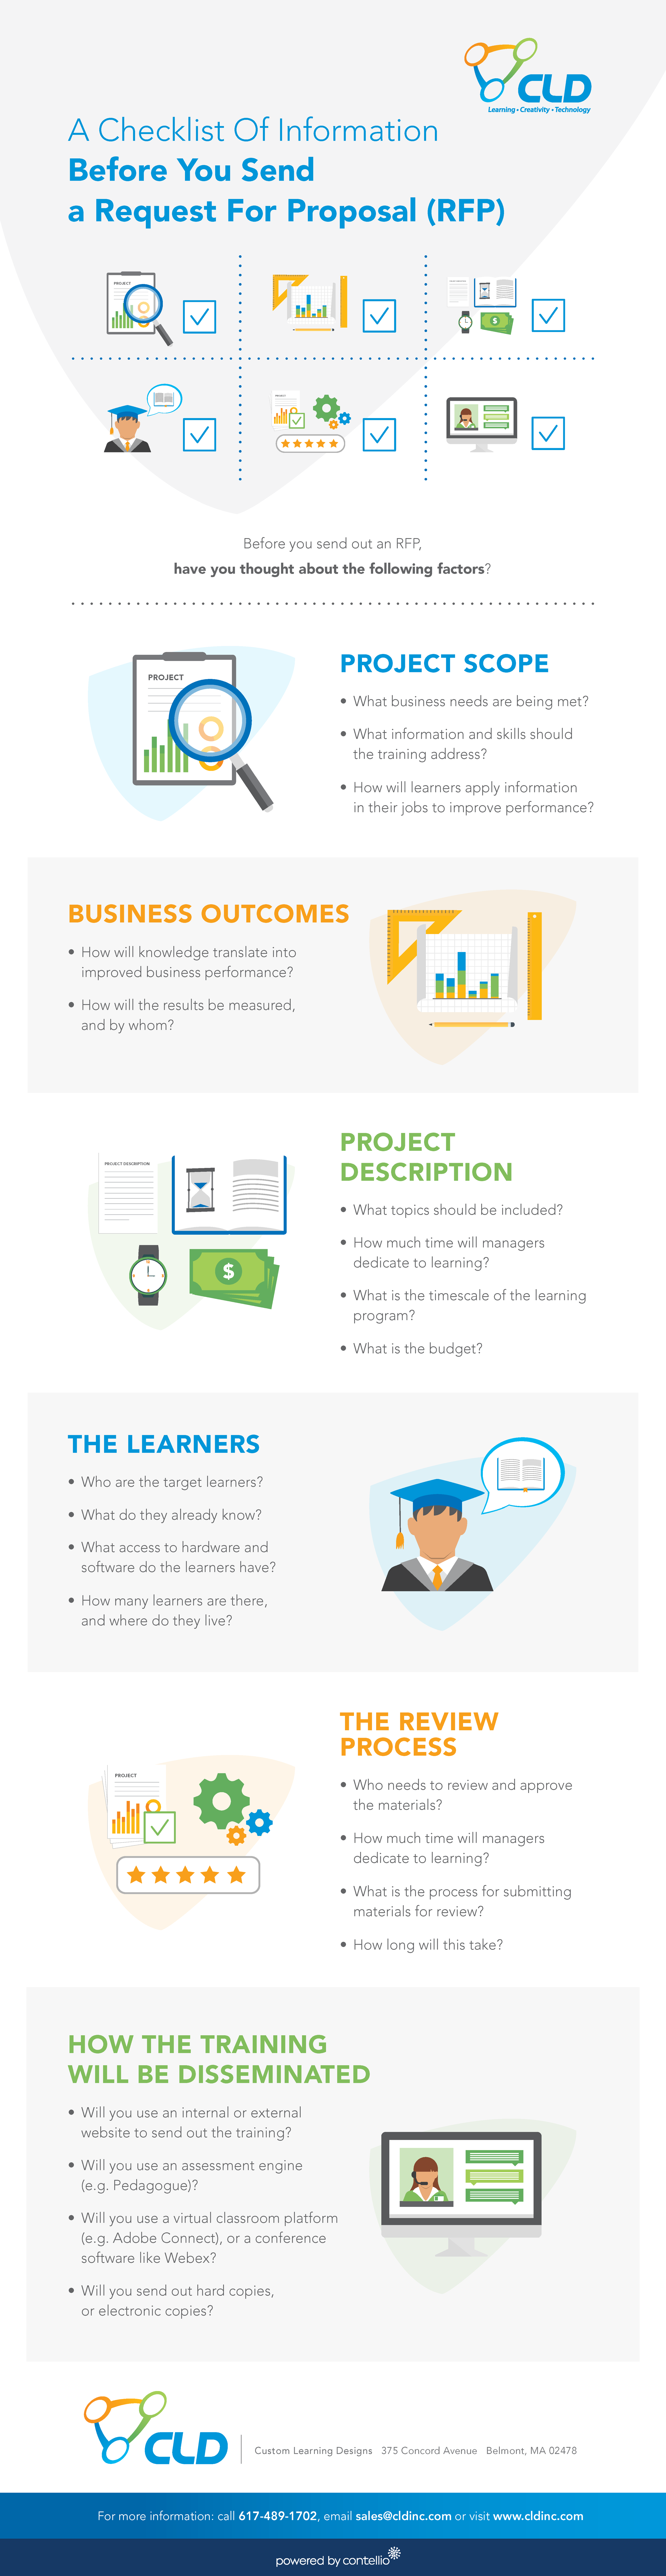 checklist before the sales training rfp infographic